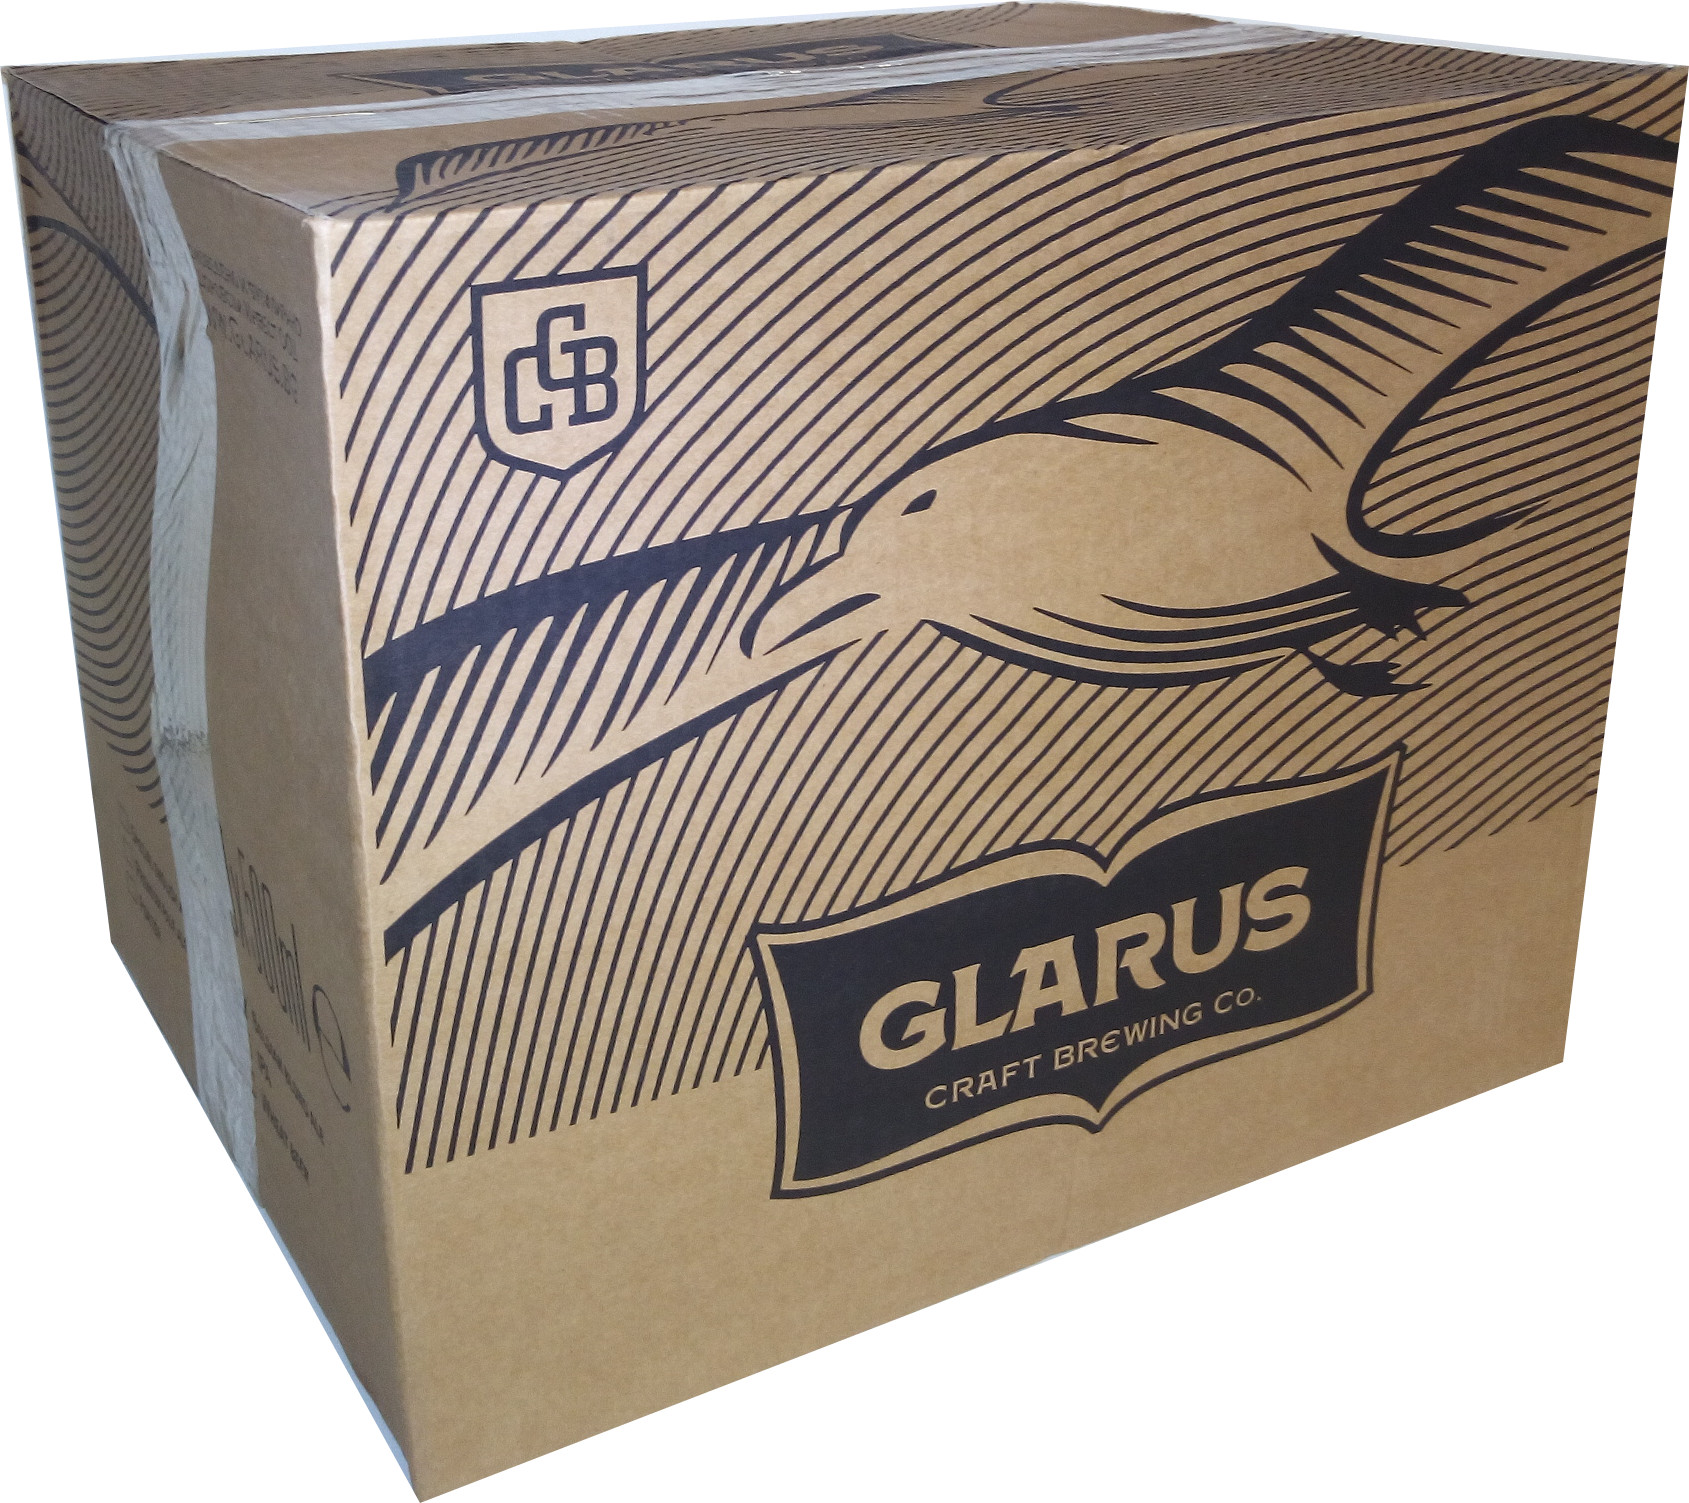 Beer Glarus Special English Ale - box 20 bottles